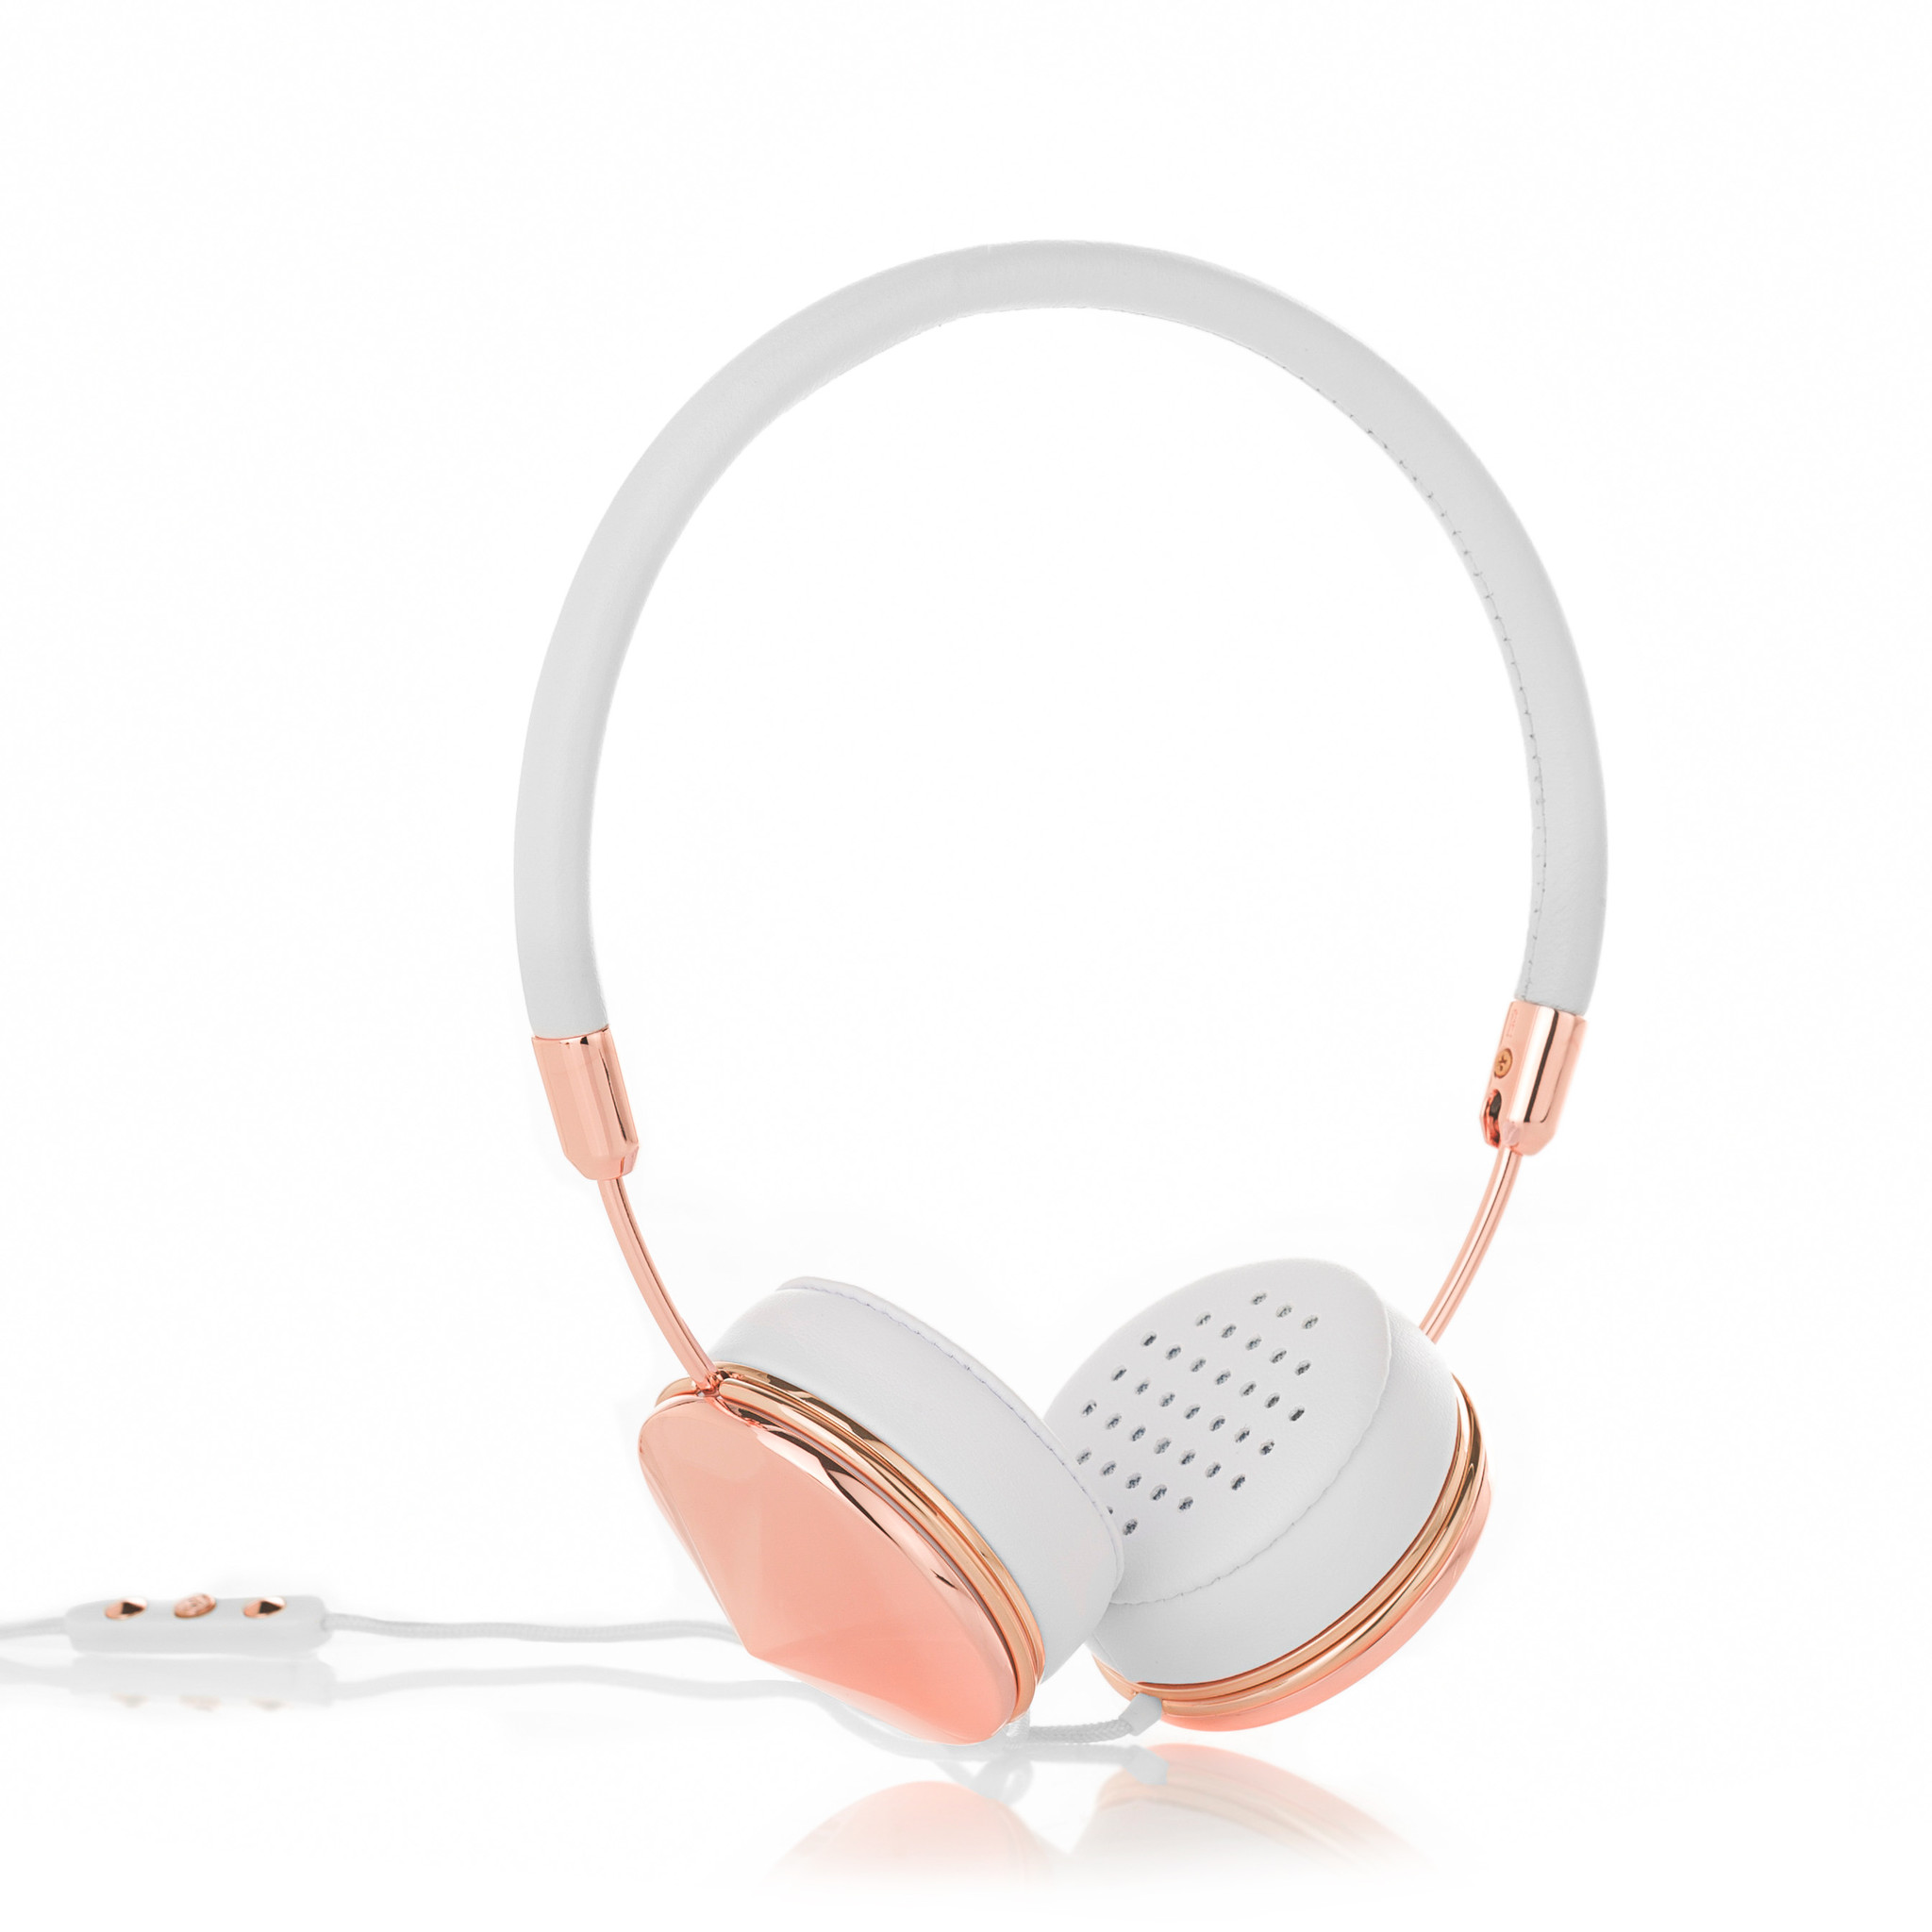 creative Headphone design and concept 2